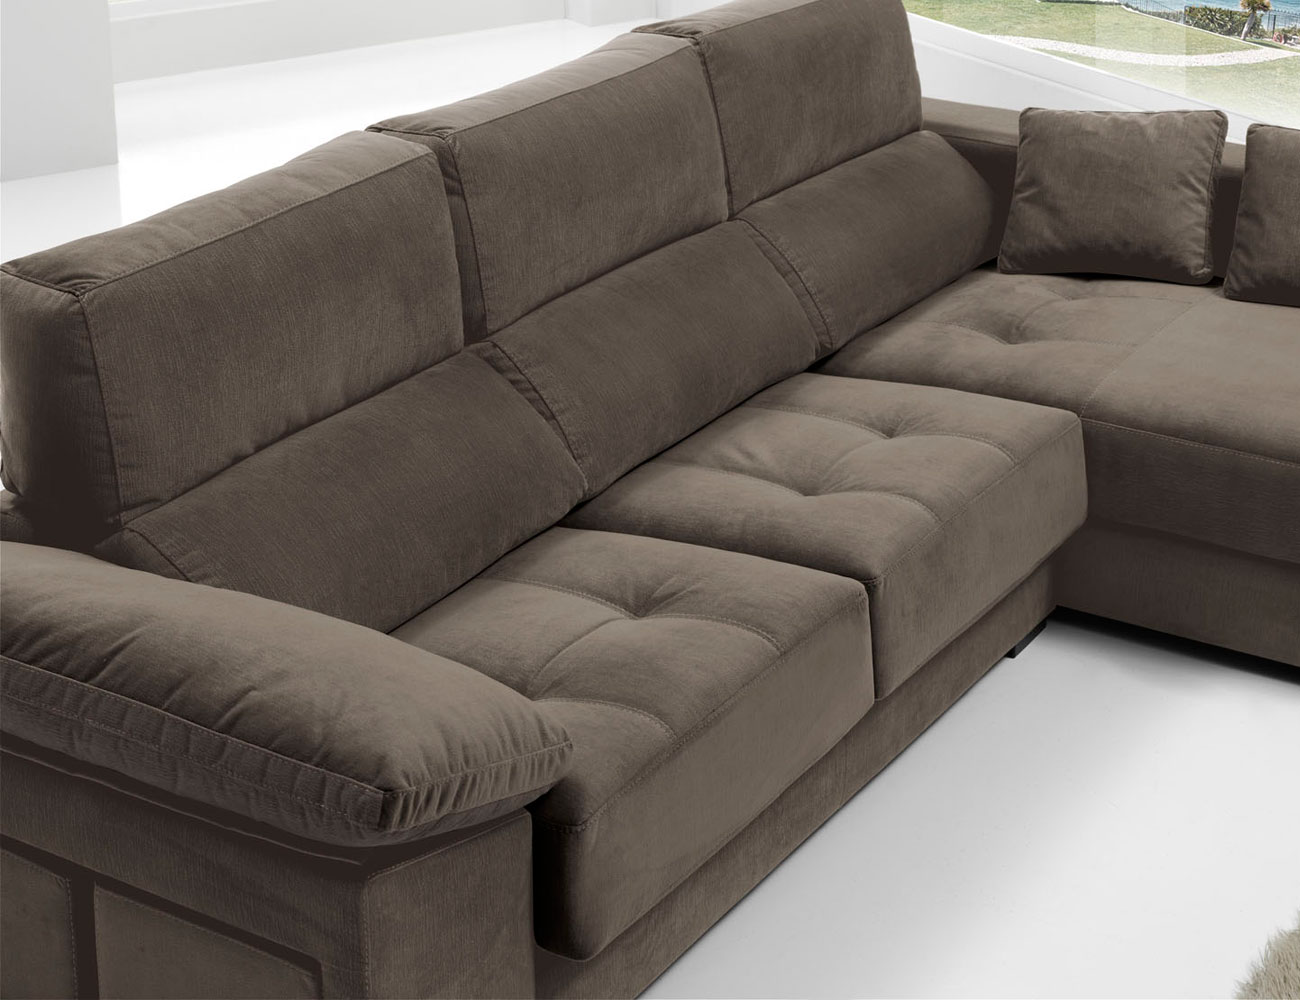 Sofa chaiselongue anti manchas bering pouf 263